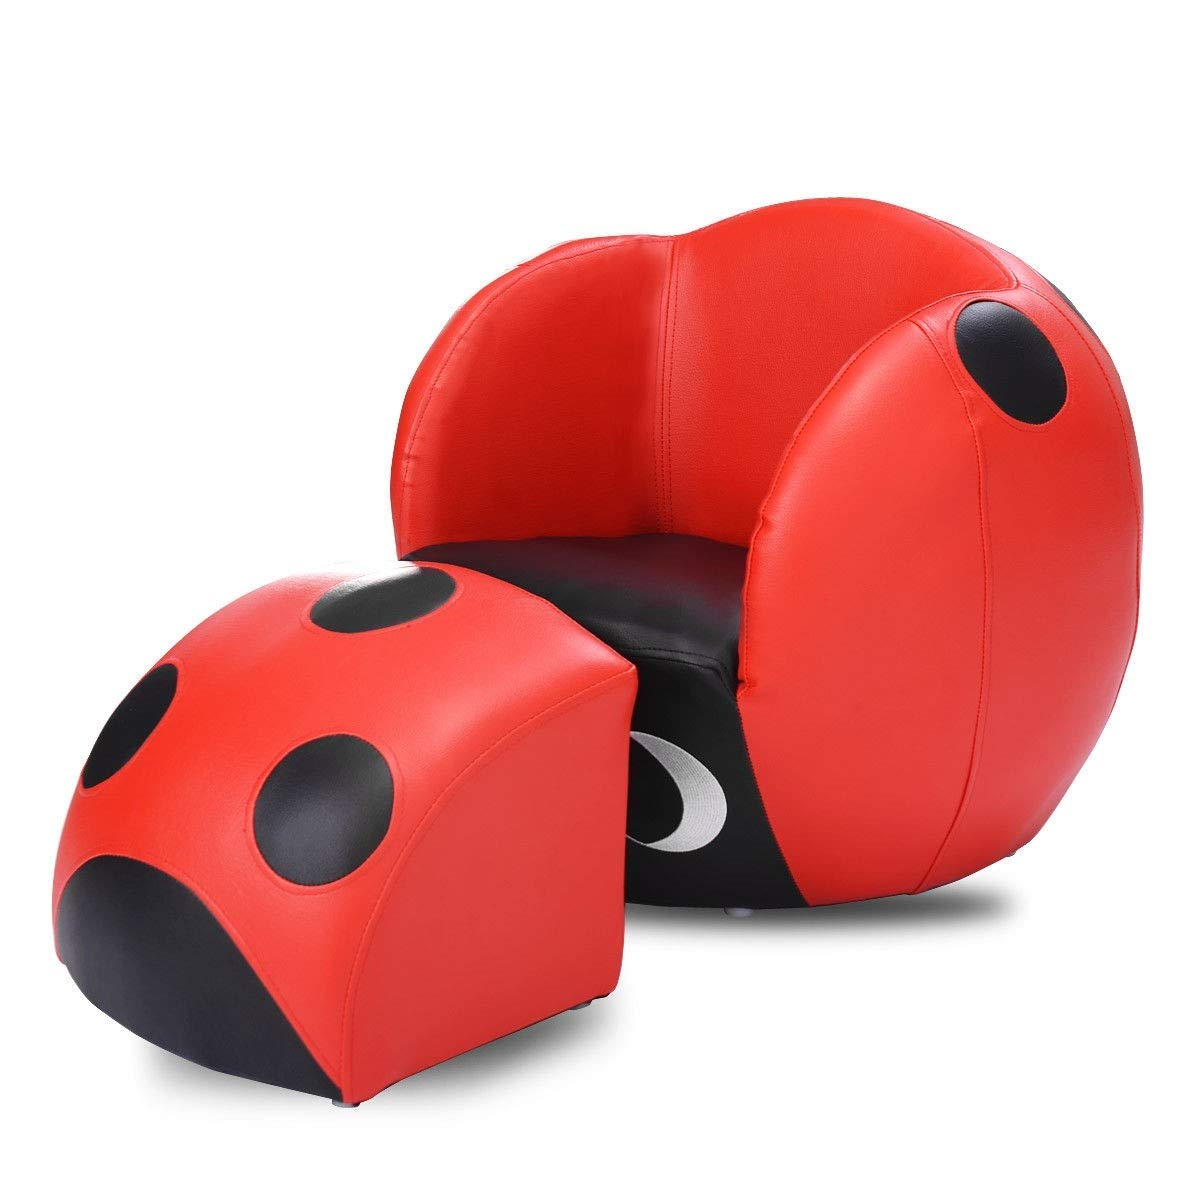 LHONE Kids Ladybug Sofa Chair with Ottoman for Child's Bedroom Playroom Space-Saving Kids Chair with Footstool Single Seat Sofa by LHONE